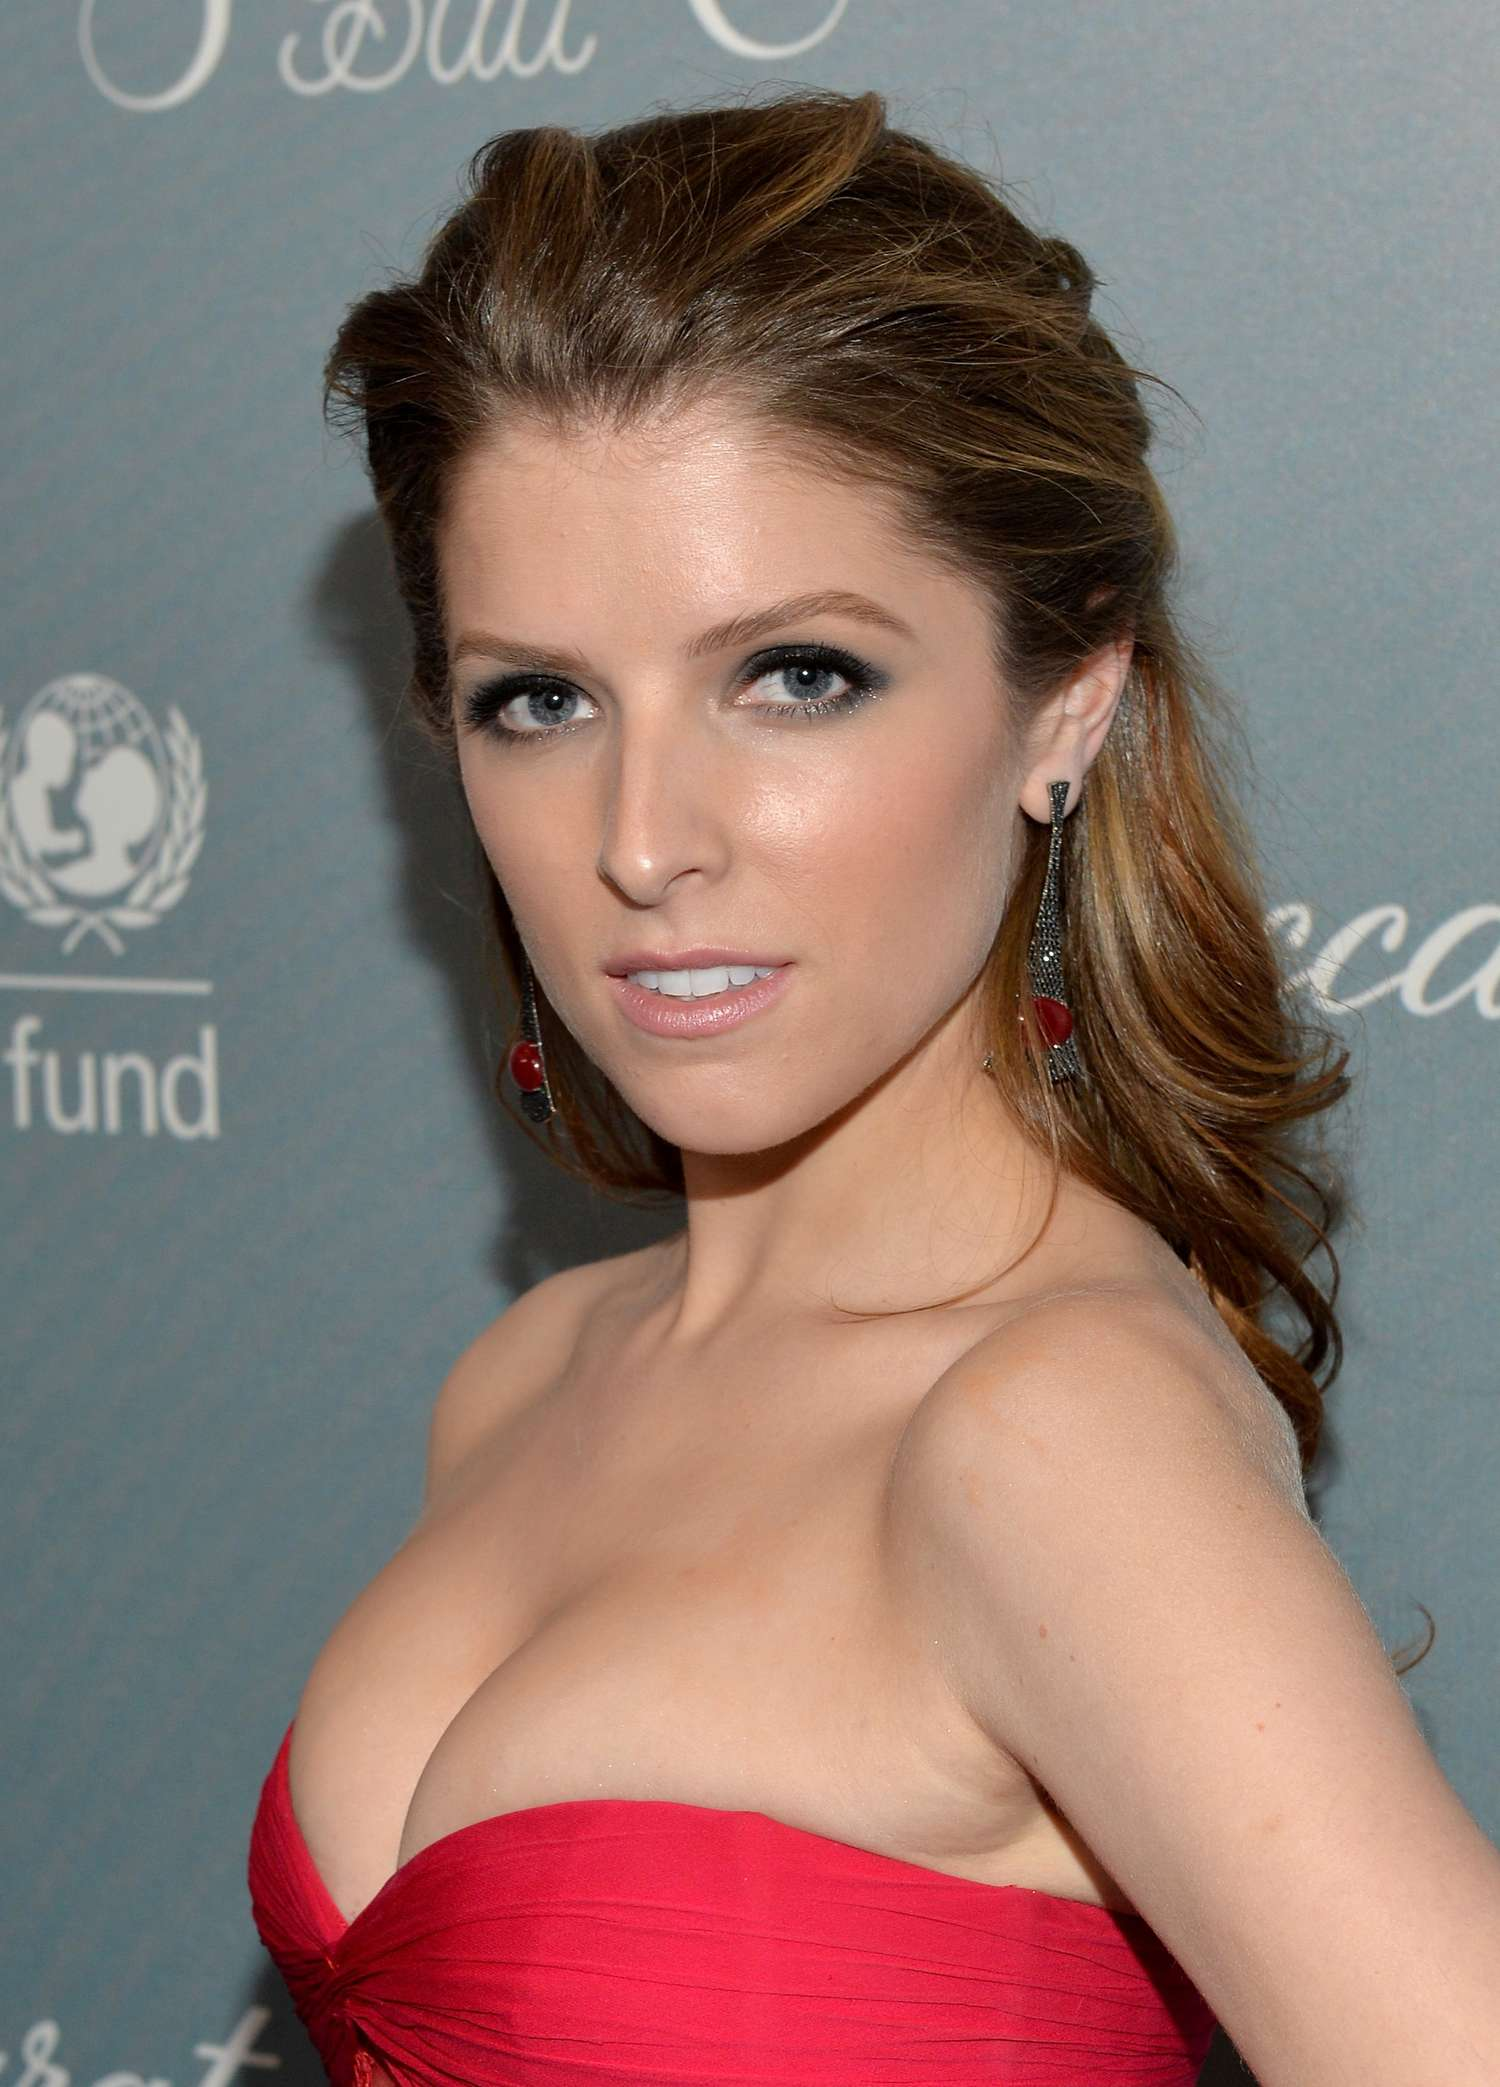 ICloud Anna Kendrick nudes (52 photo), Topless, Paparazzi, Twitter, butt 2006